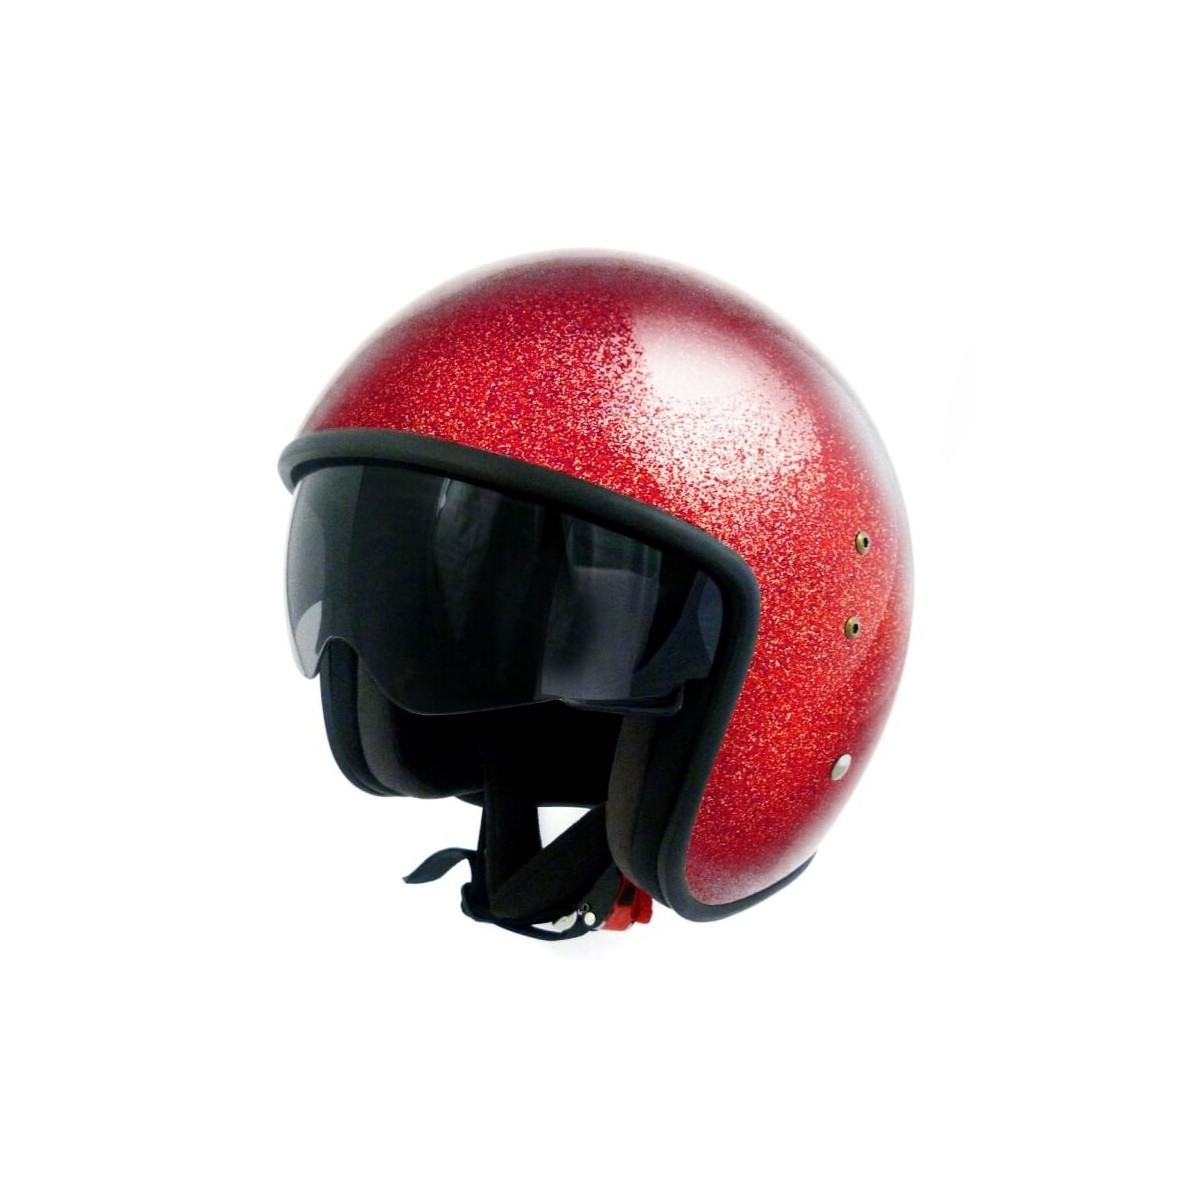 Casque Moto Jet Vintage Up Smart Glitter Paillete Moto Dream Com